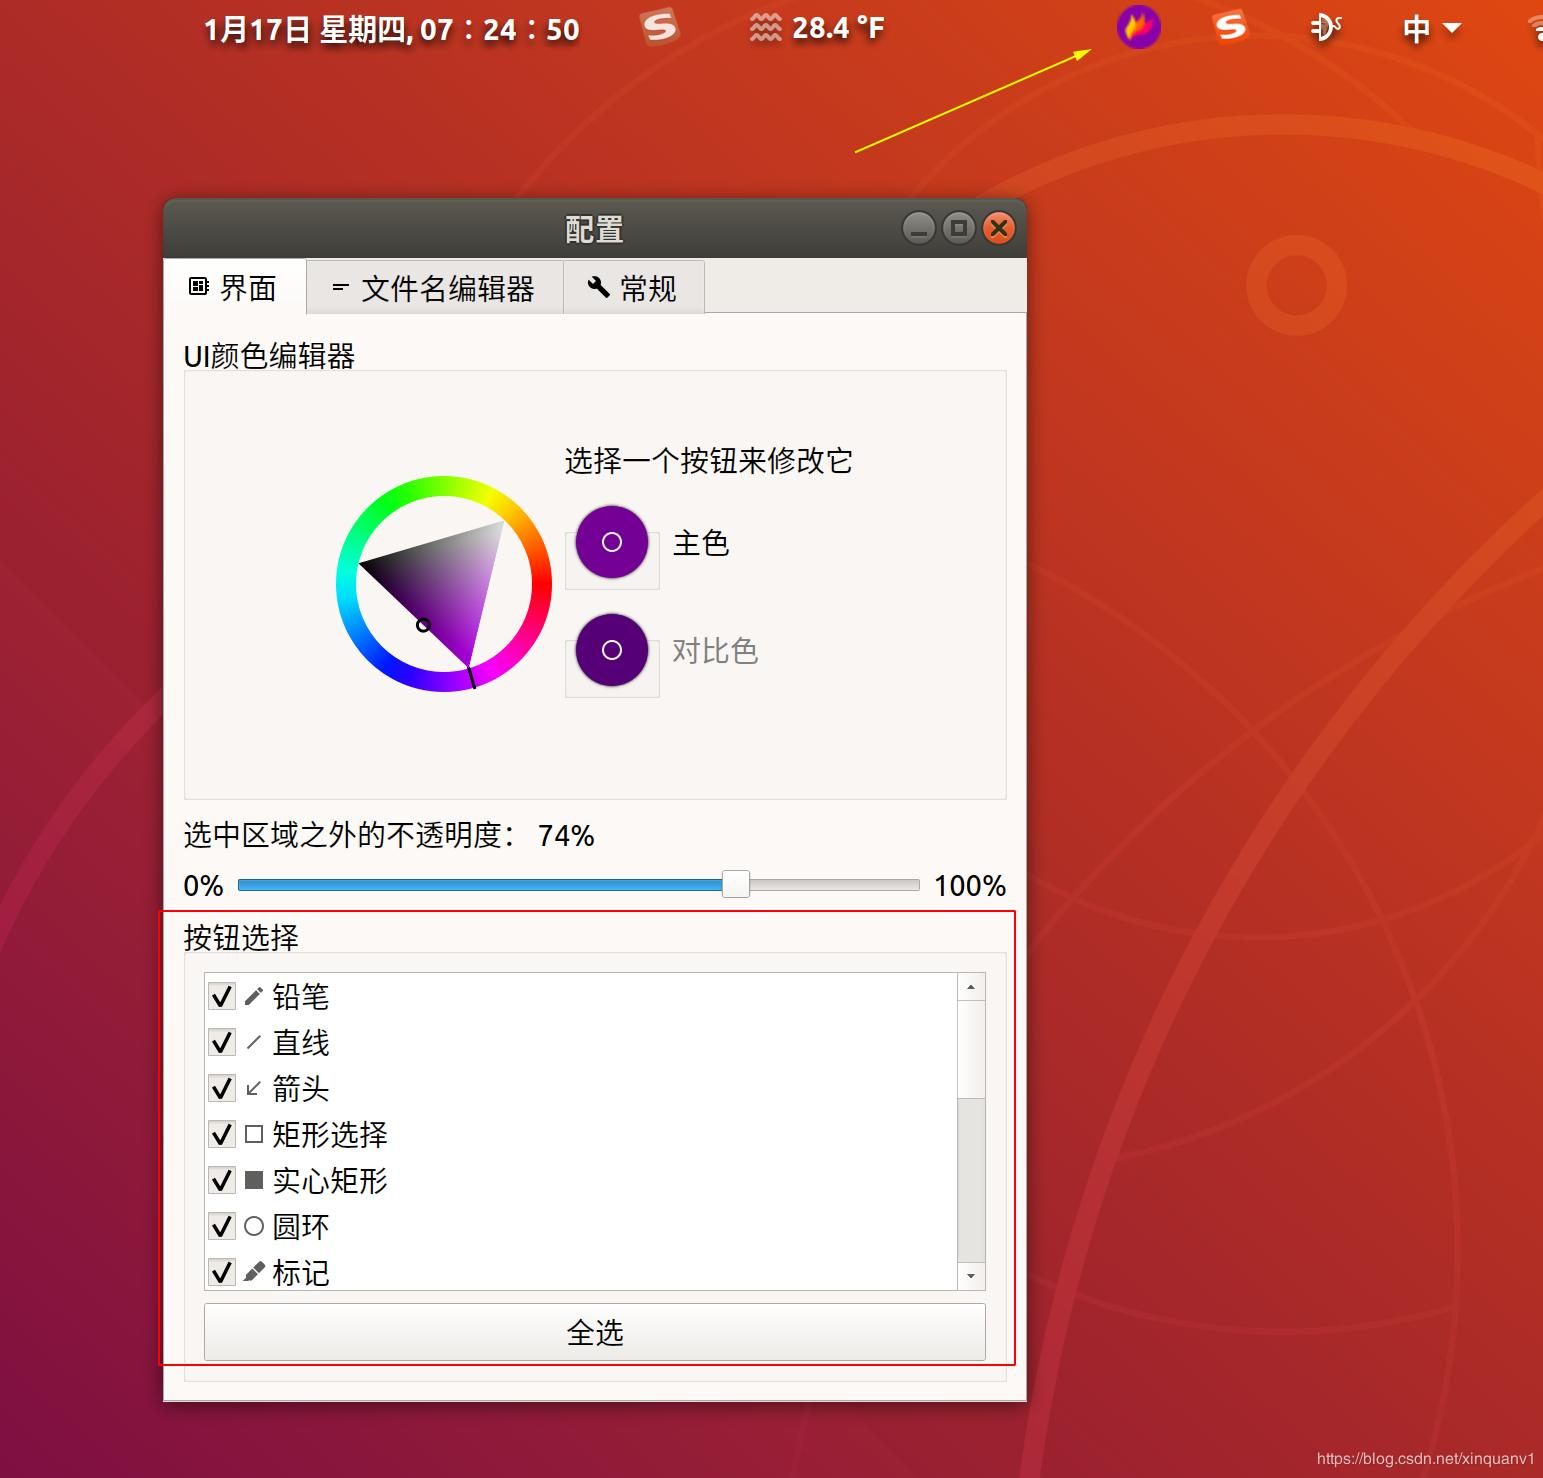 open source evaluation 01]-flameshot, this is perhaps the